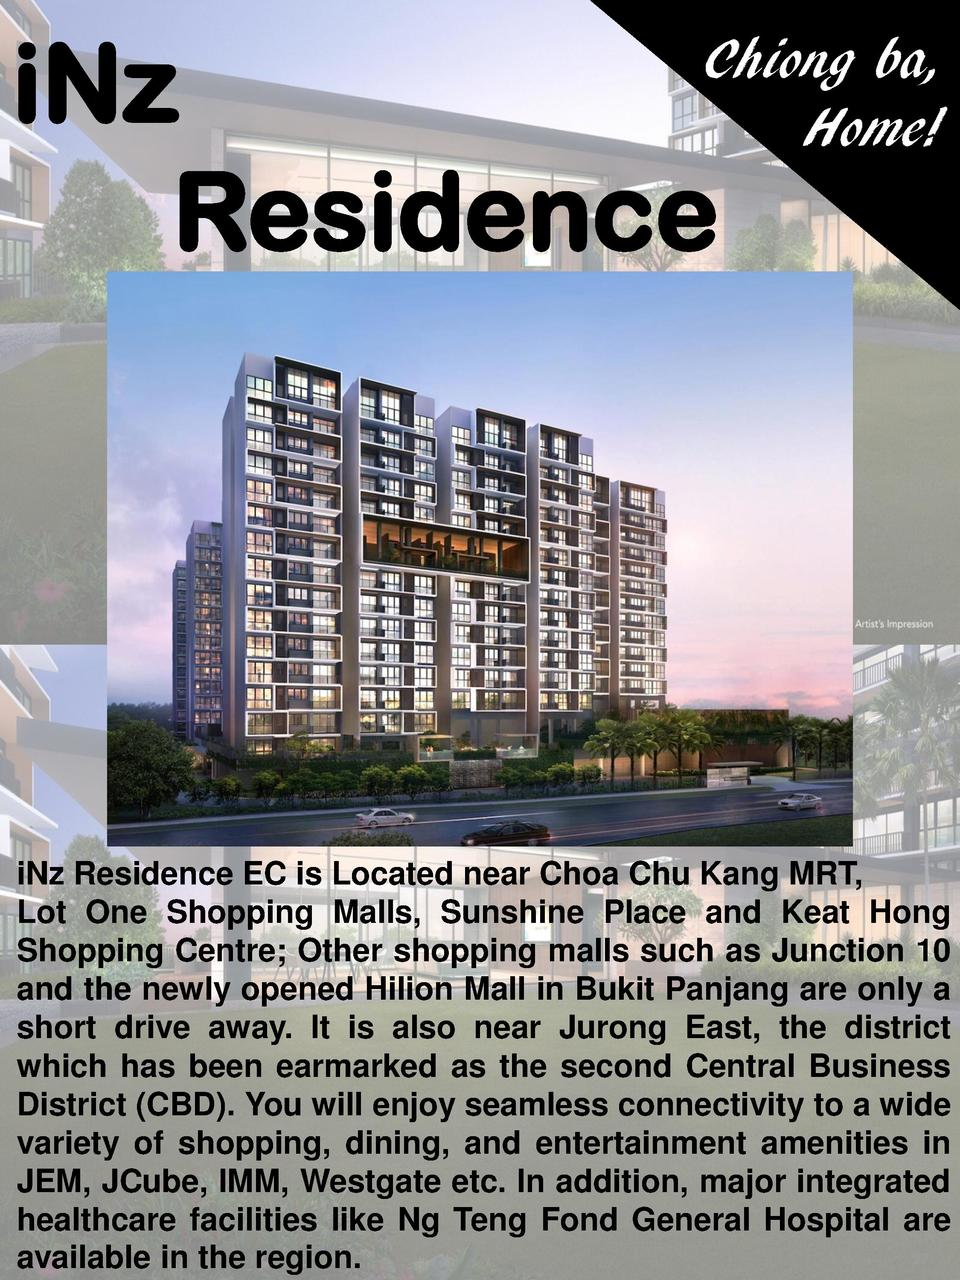 iNz Residence  Chiong ba, Home   iNz Residence EC is Located near Choa Chu Kang MRT, Lot One Shopping Malls, Sunshine Plac...